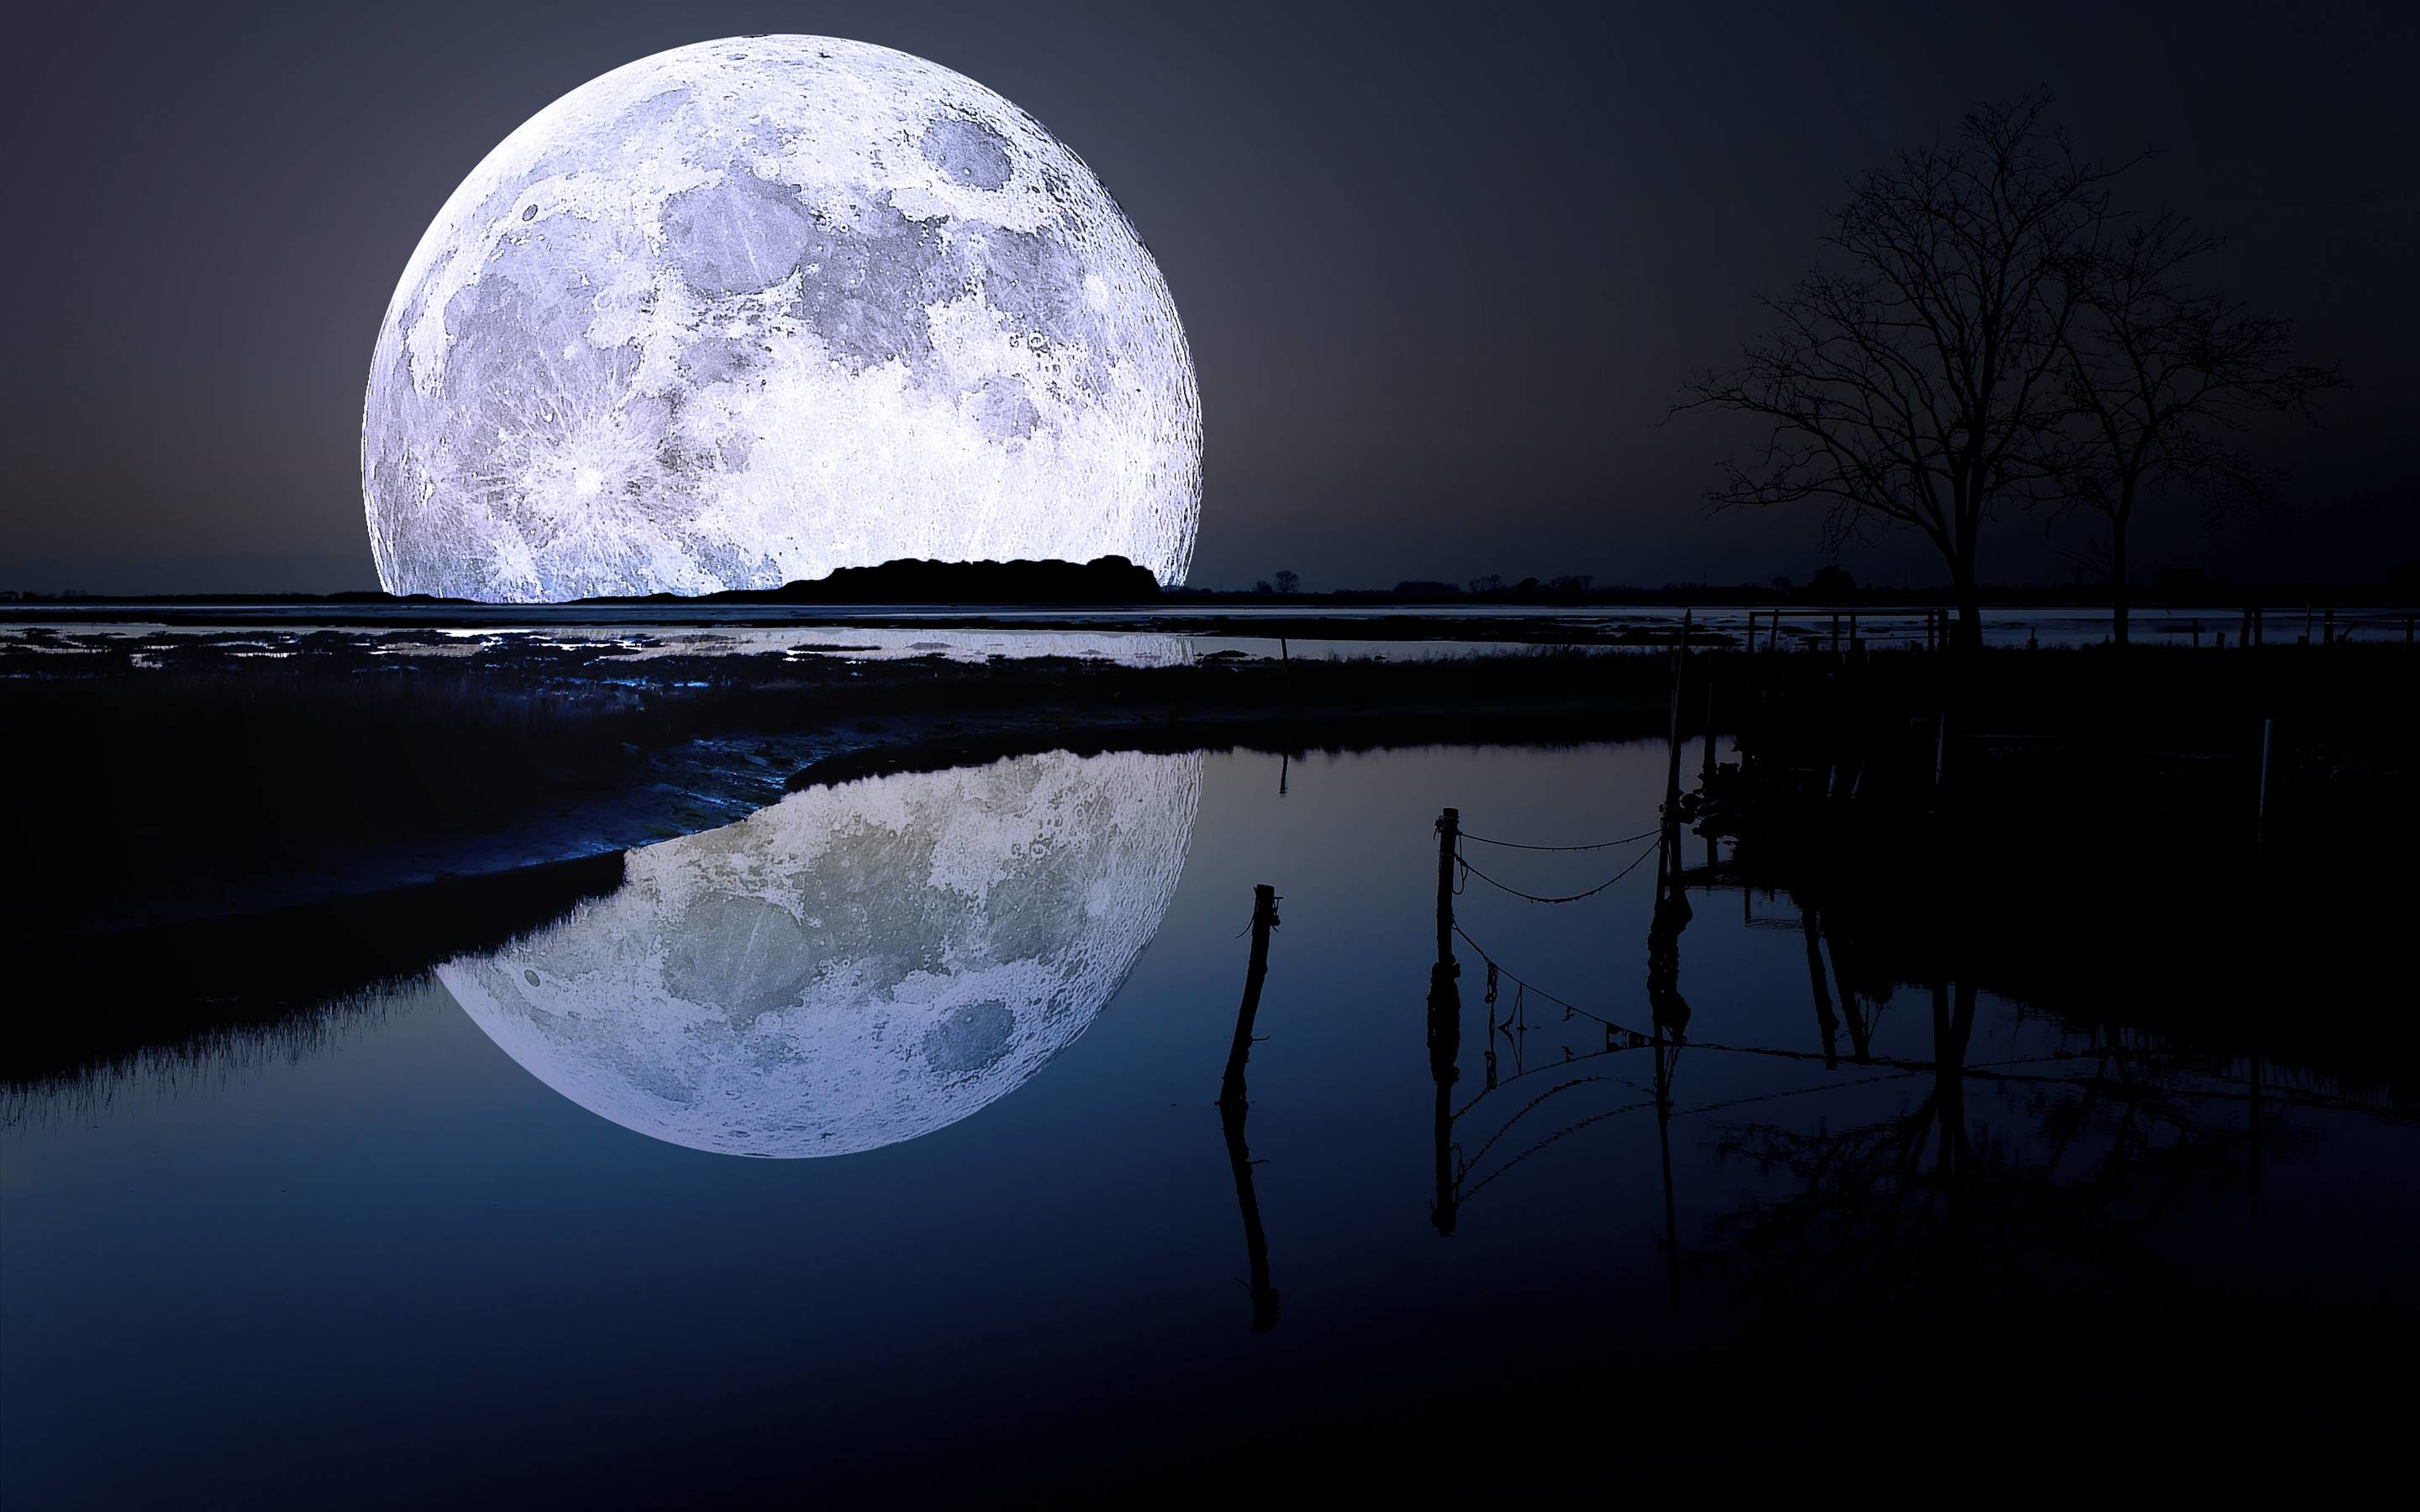 2880x1800 Full Moon Wallpapers | HD Wallpapers